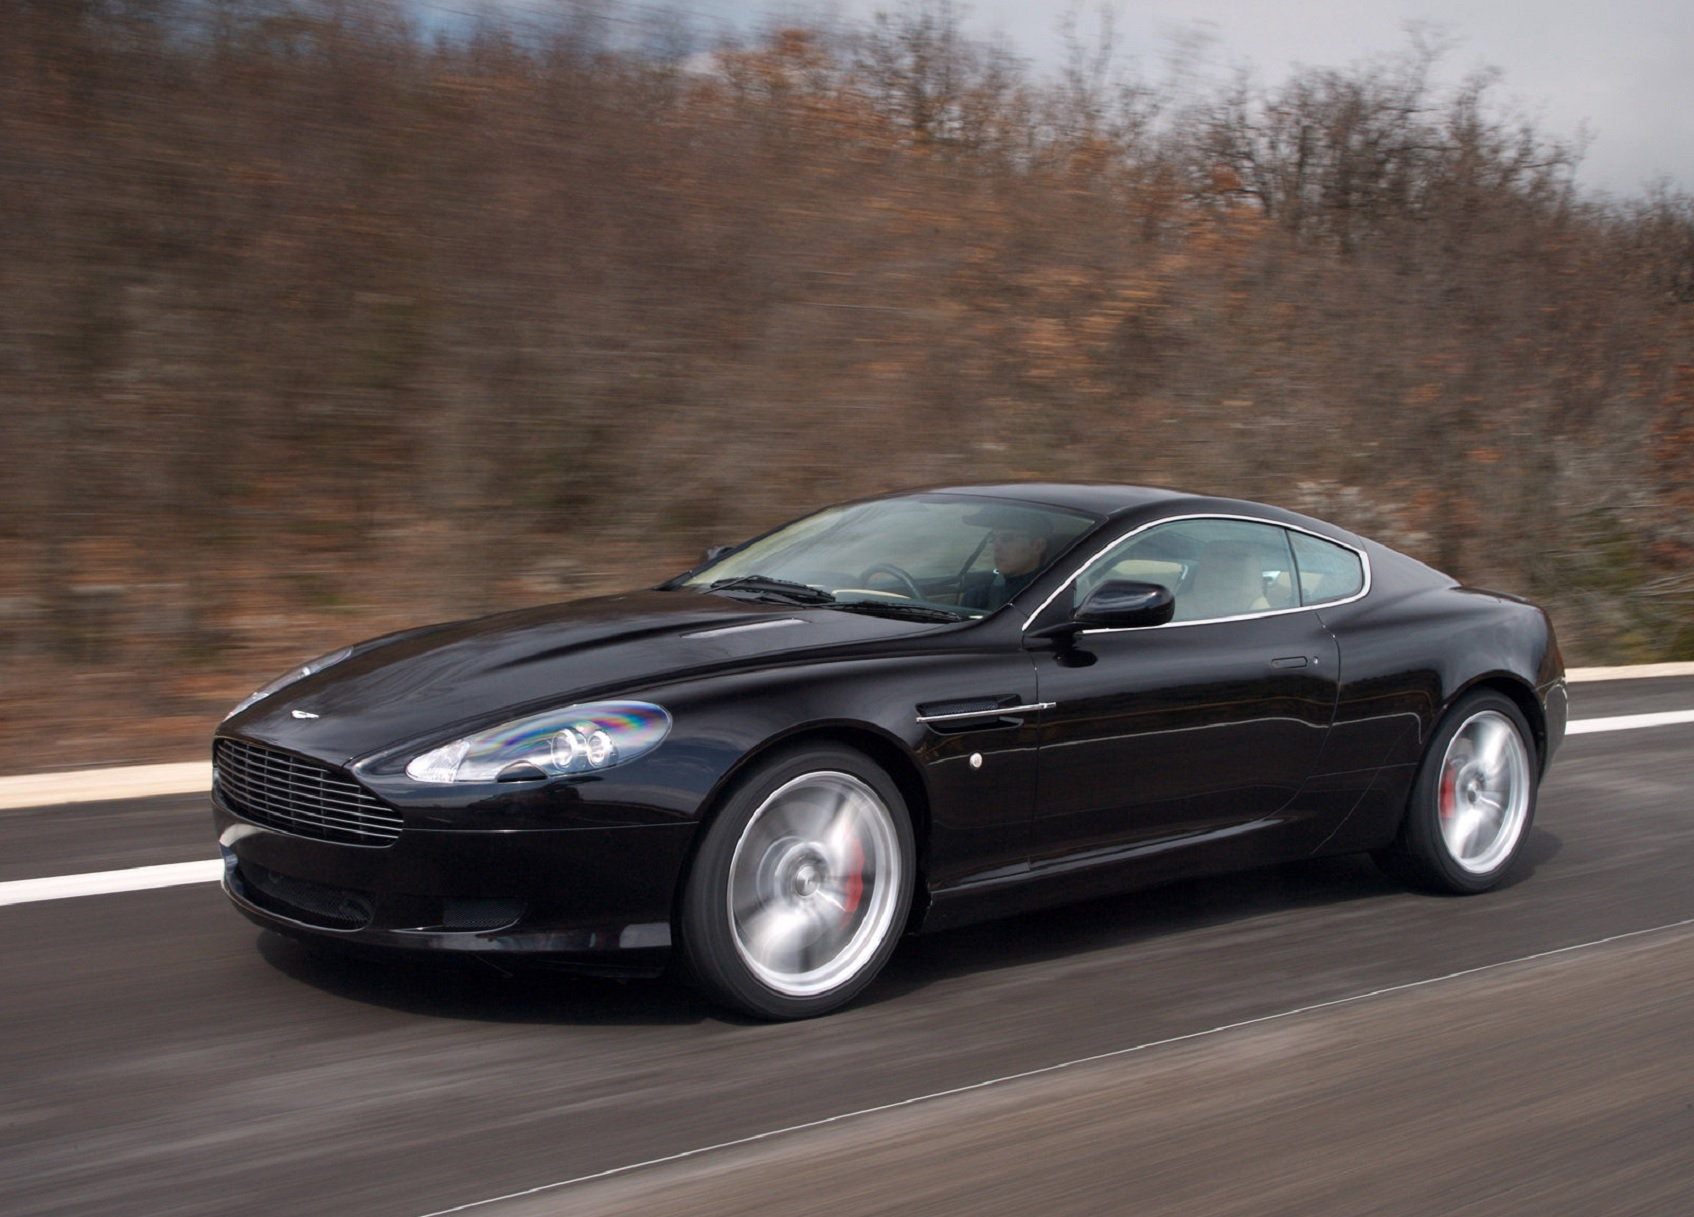 The Stylish Aston Martin Db9 Is Now A Relatively Affordable V12 Powered Luxury Gt